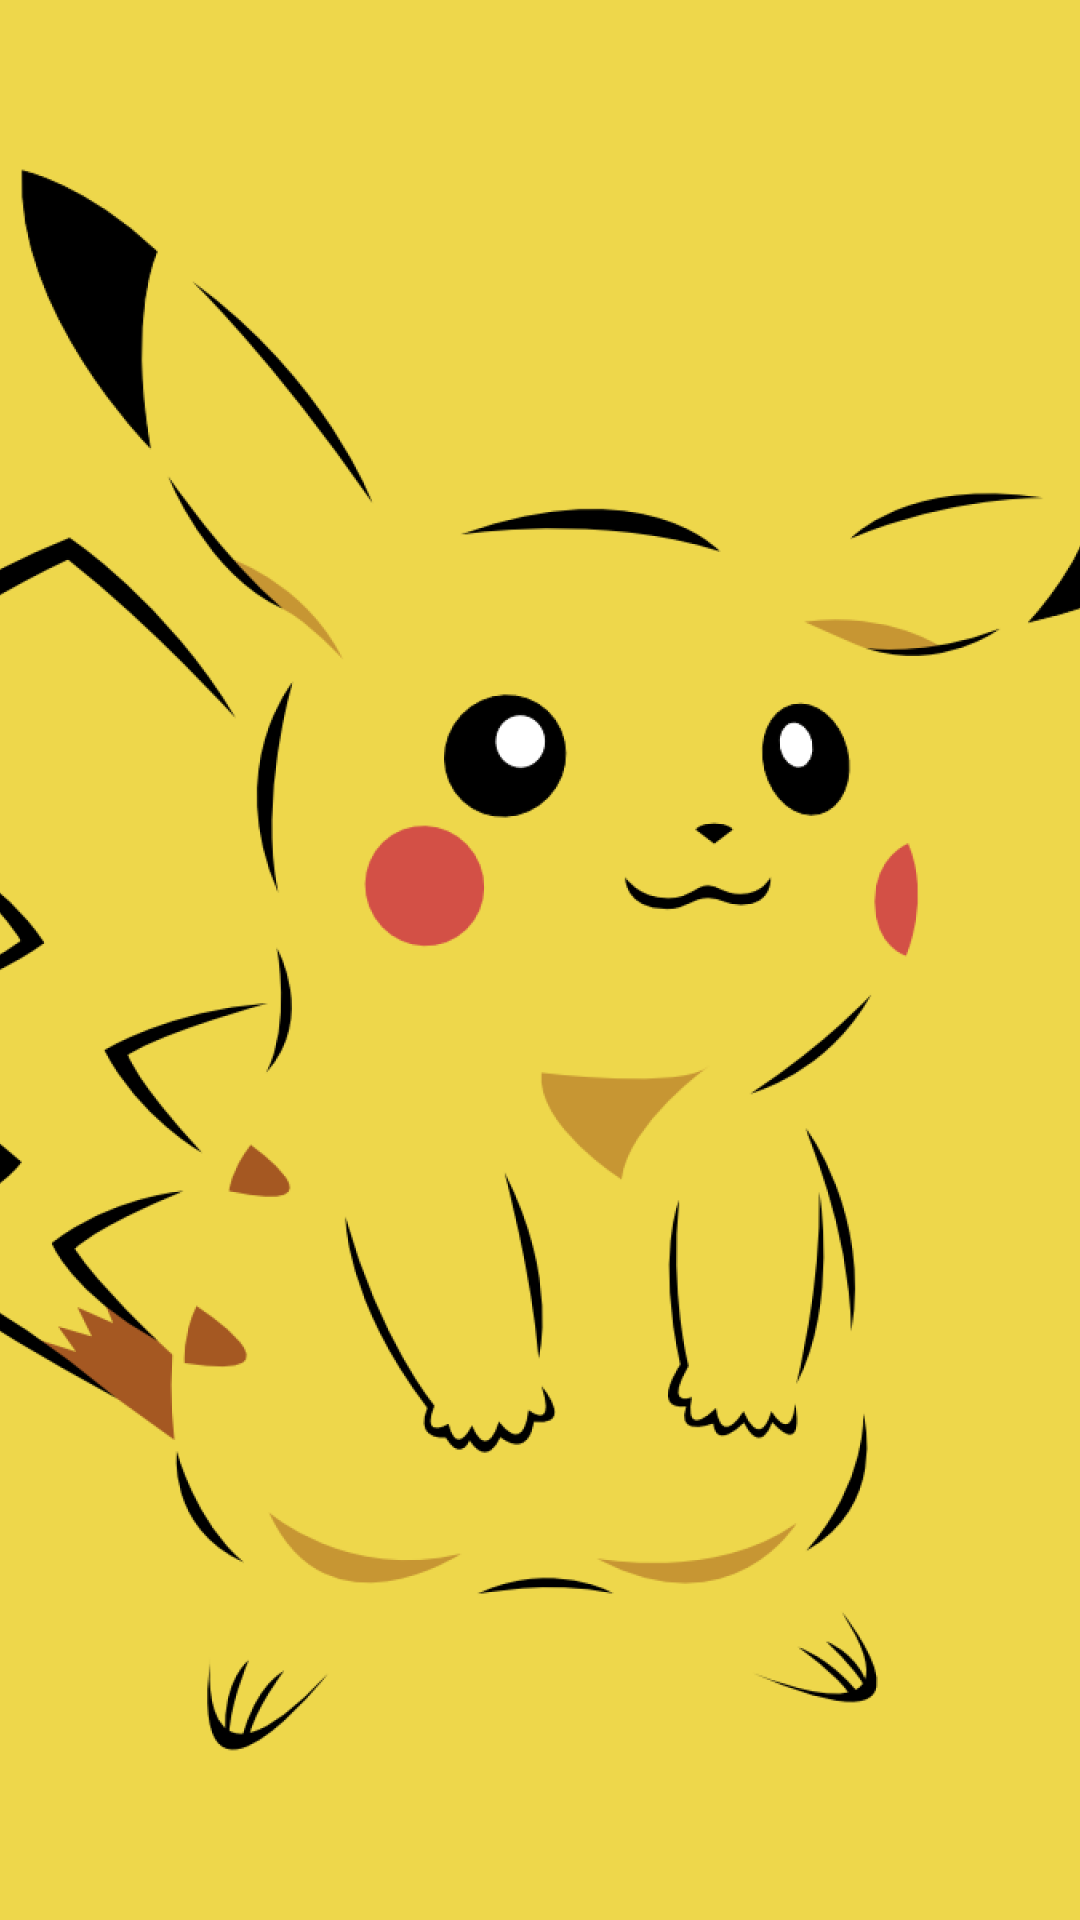 Pikachu Wallpaper For Iphone